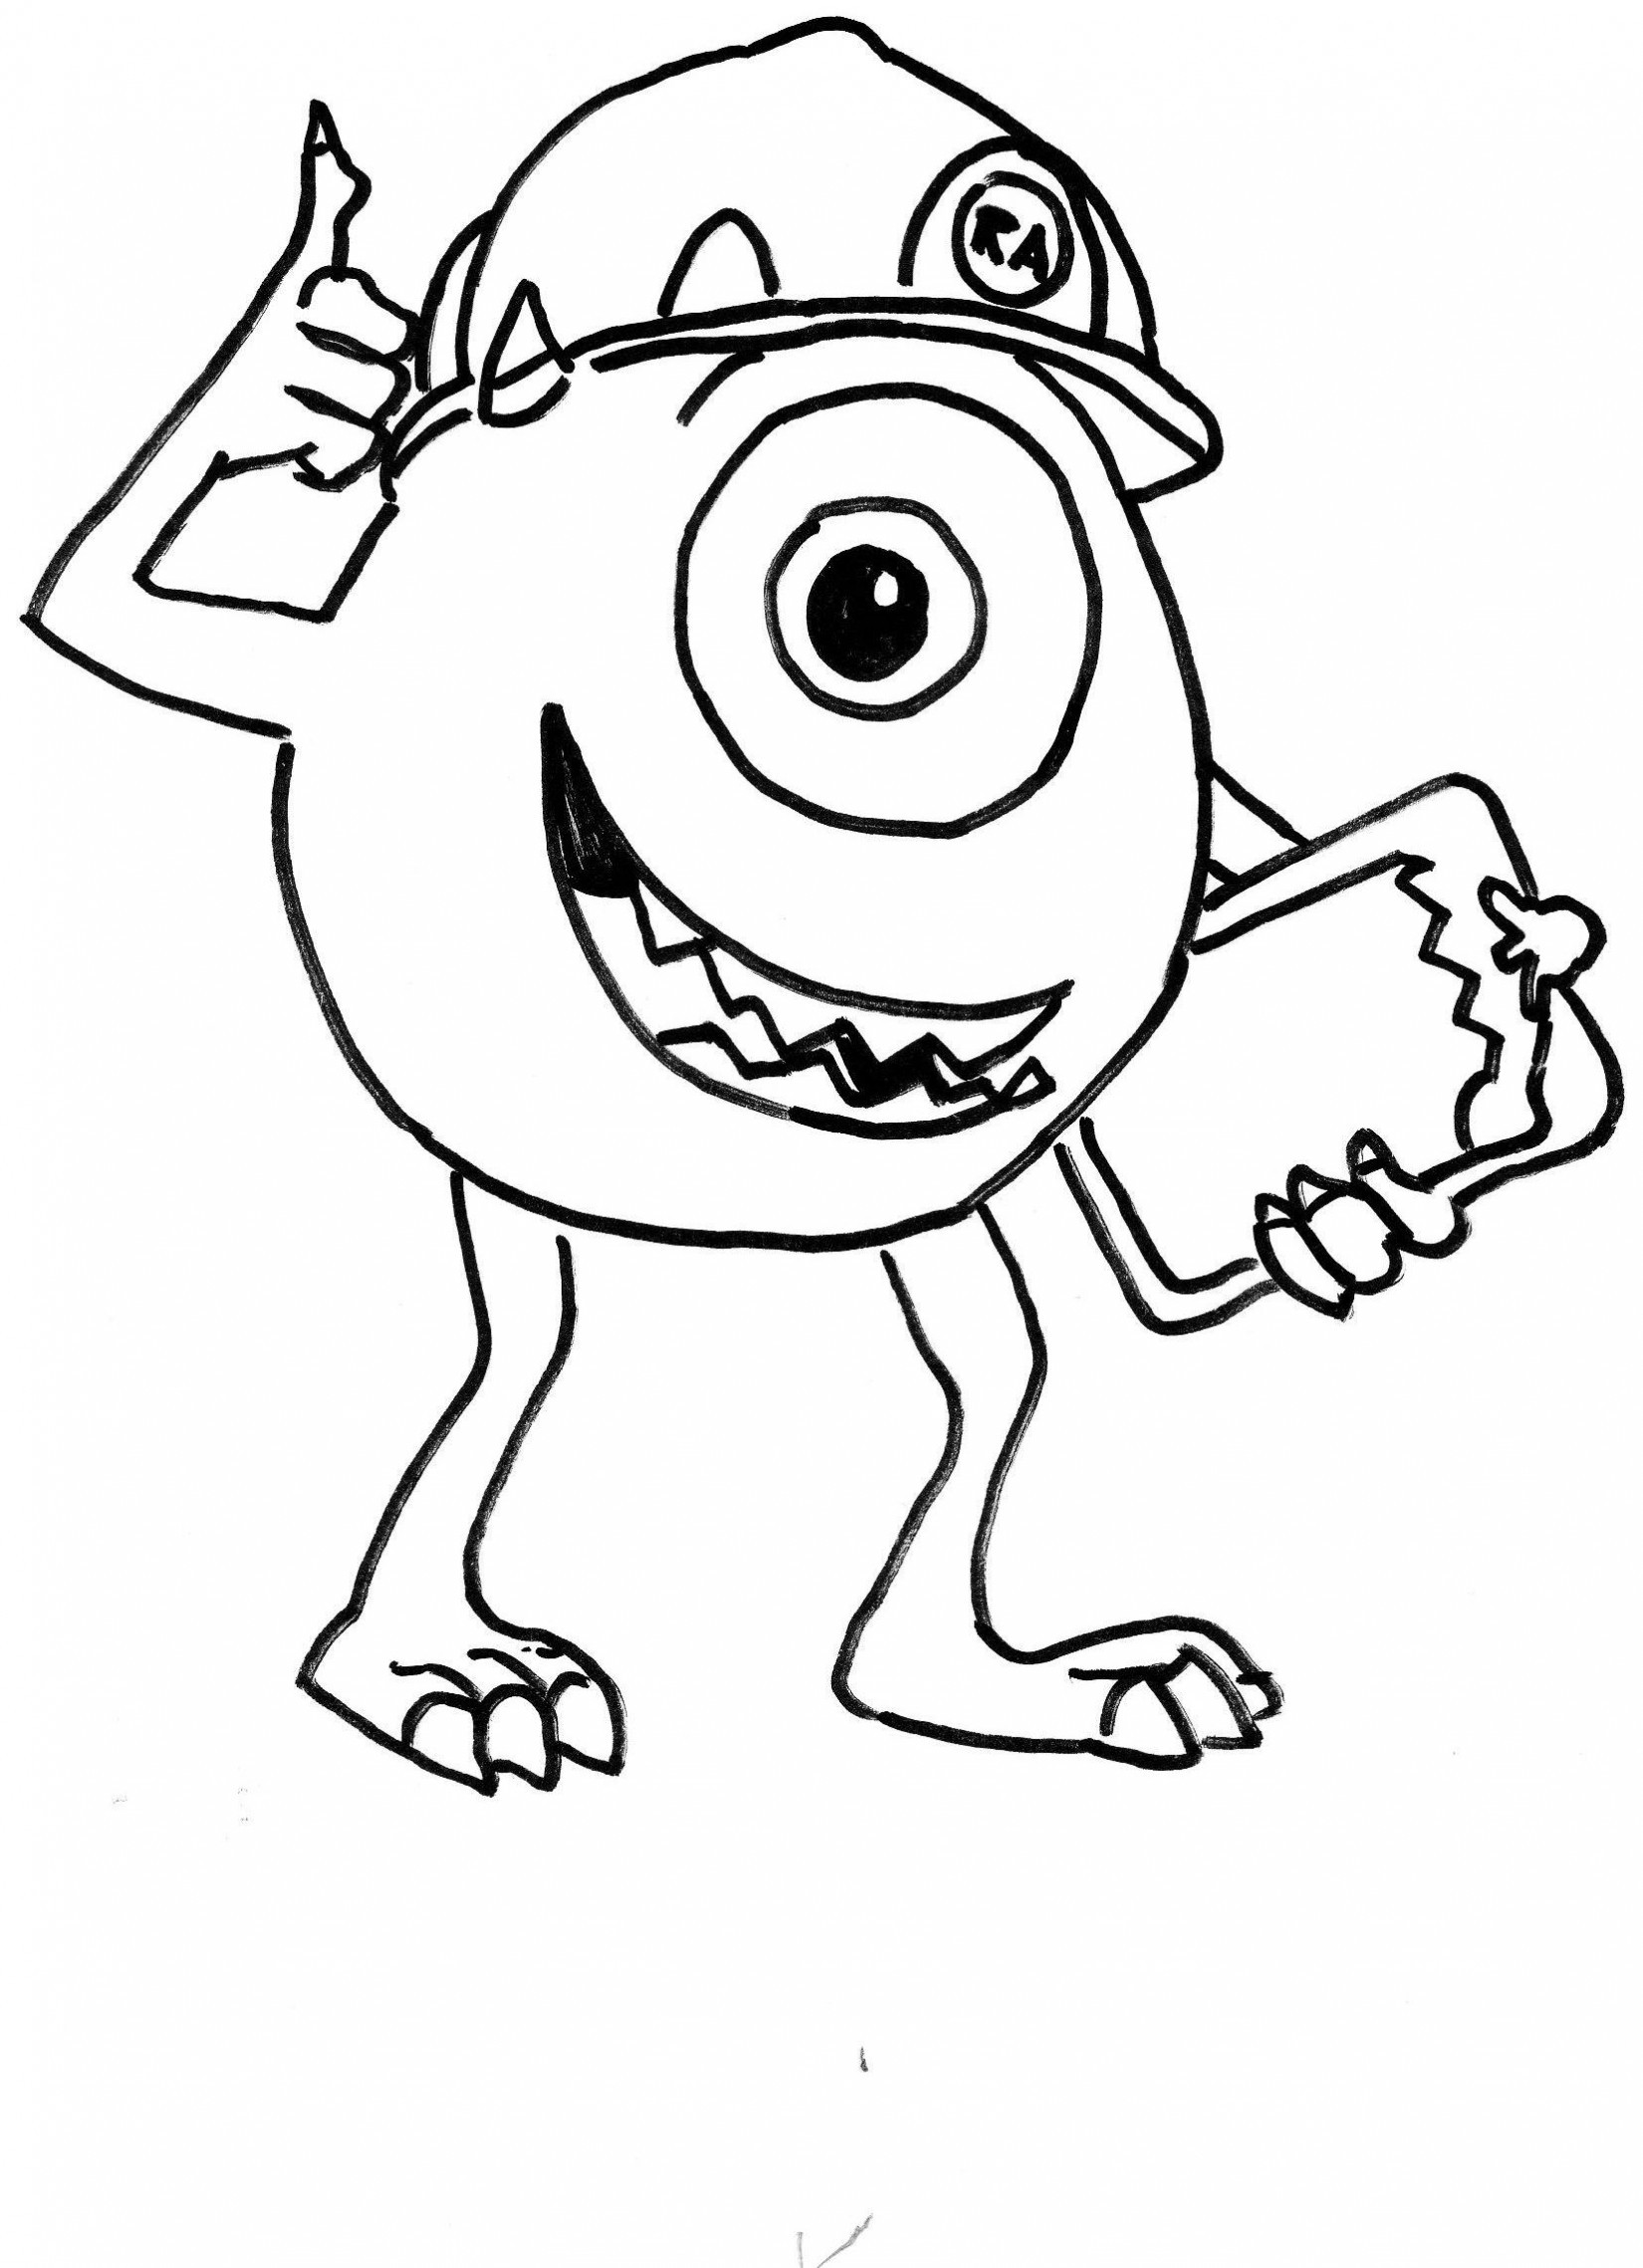 free coloring pages cartoons - photo#15